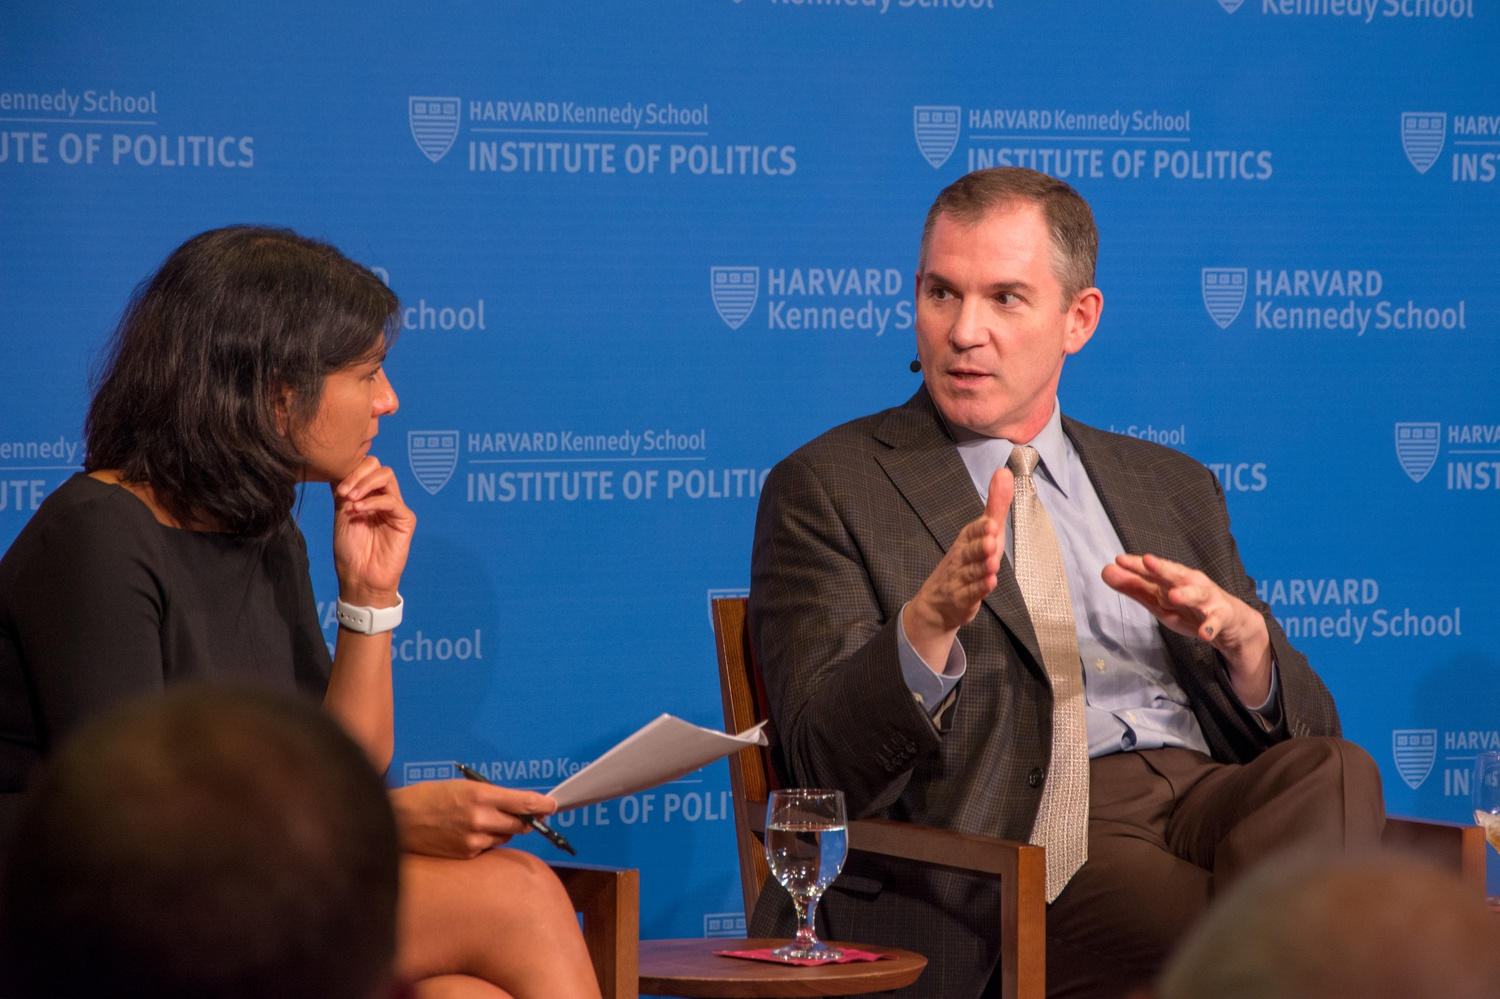 Frank Bruni from the New York Times spoke at the IOP on Wednesday evening alongside University of Chicago's IOP Director David Axelrod, The Cook Political Report National Editor Amy Walter and Professor Maya Sen about the 2020 presidential Election.